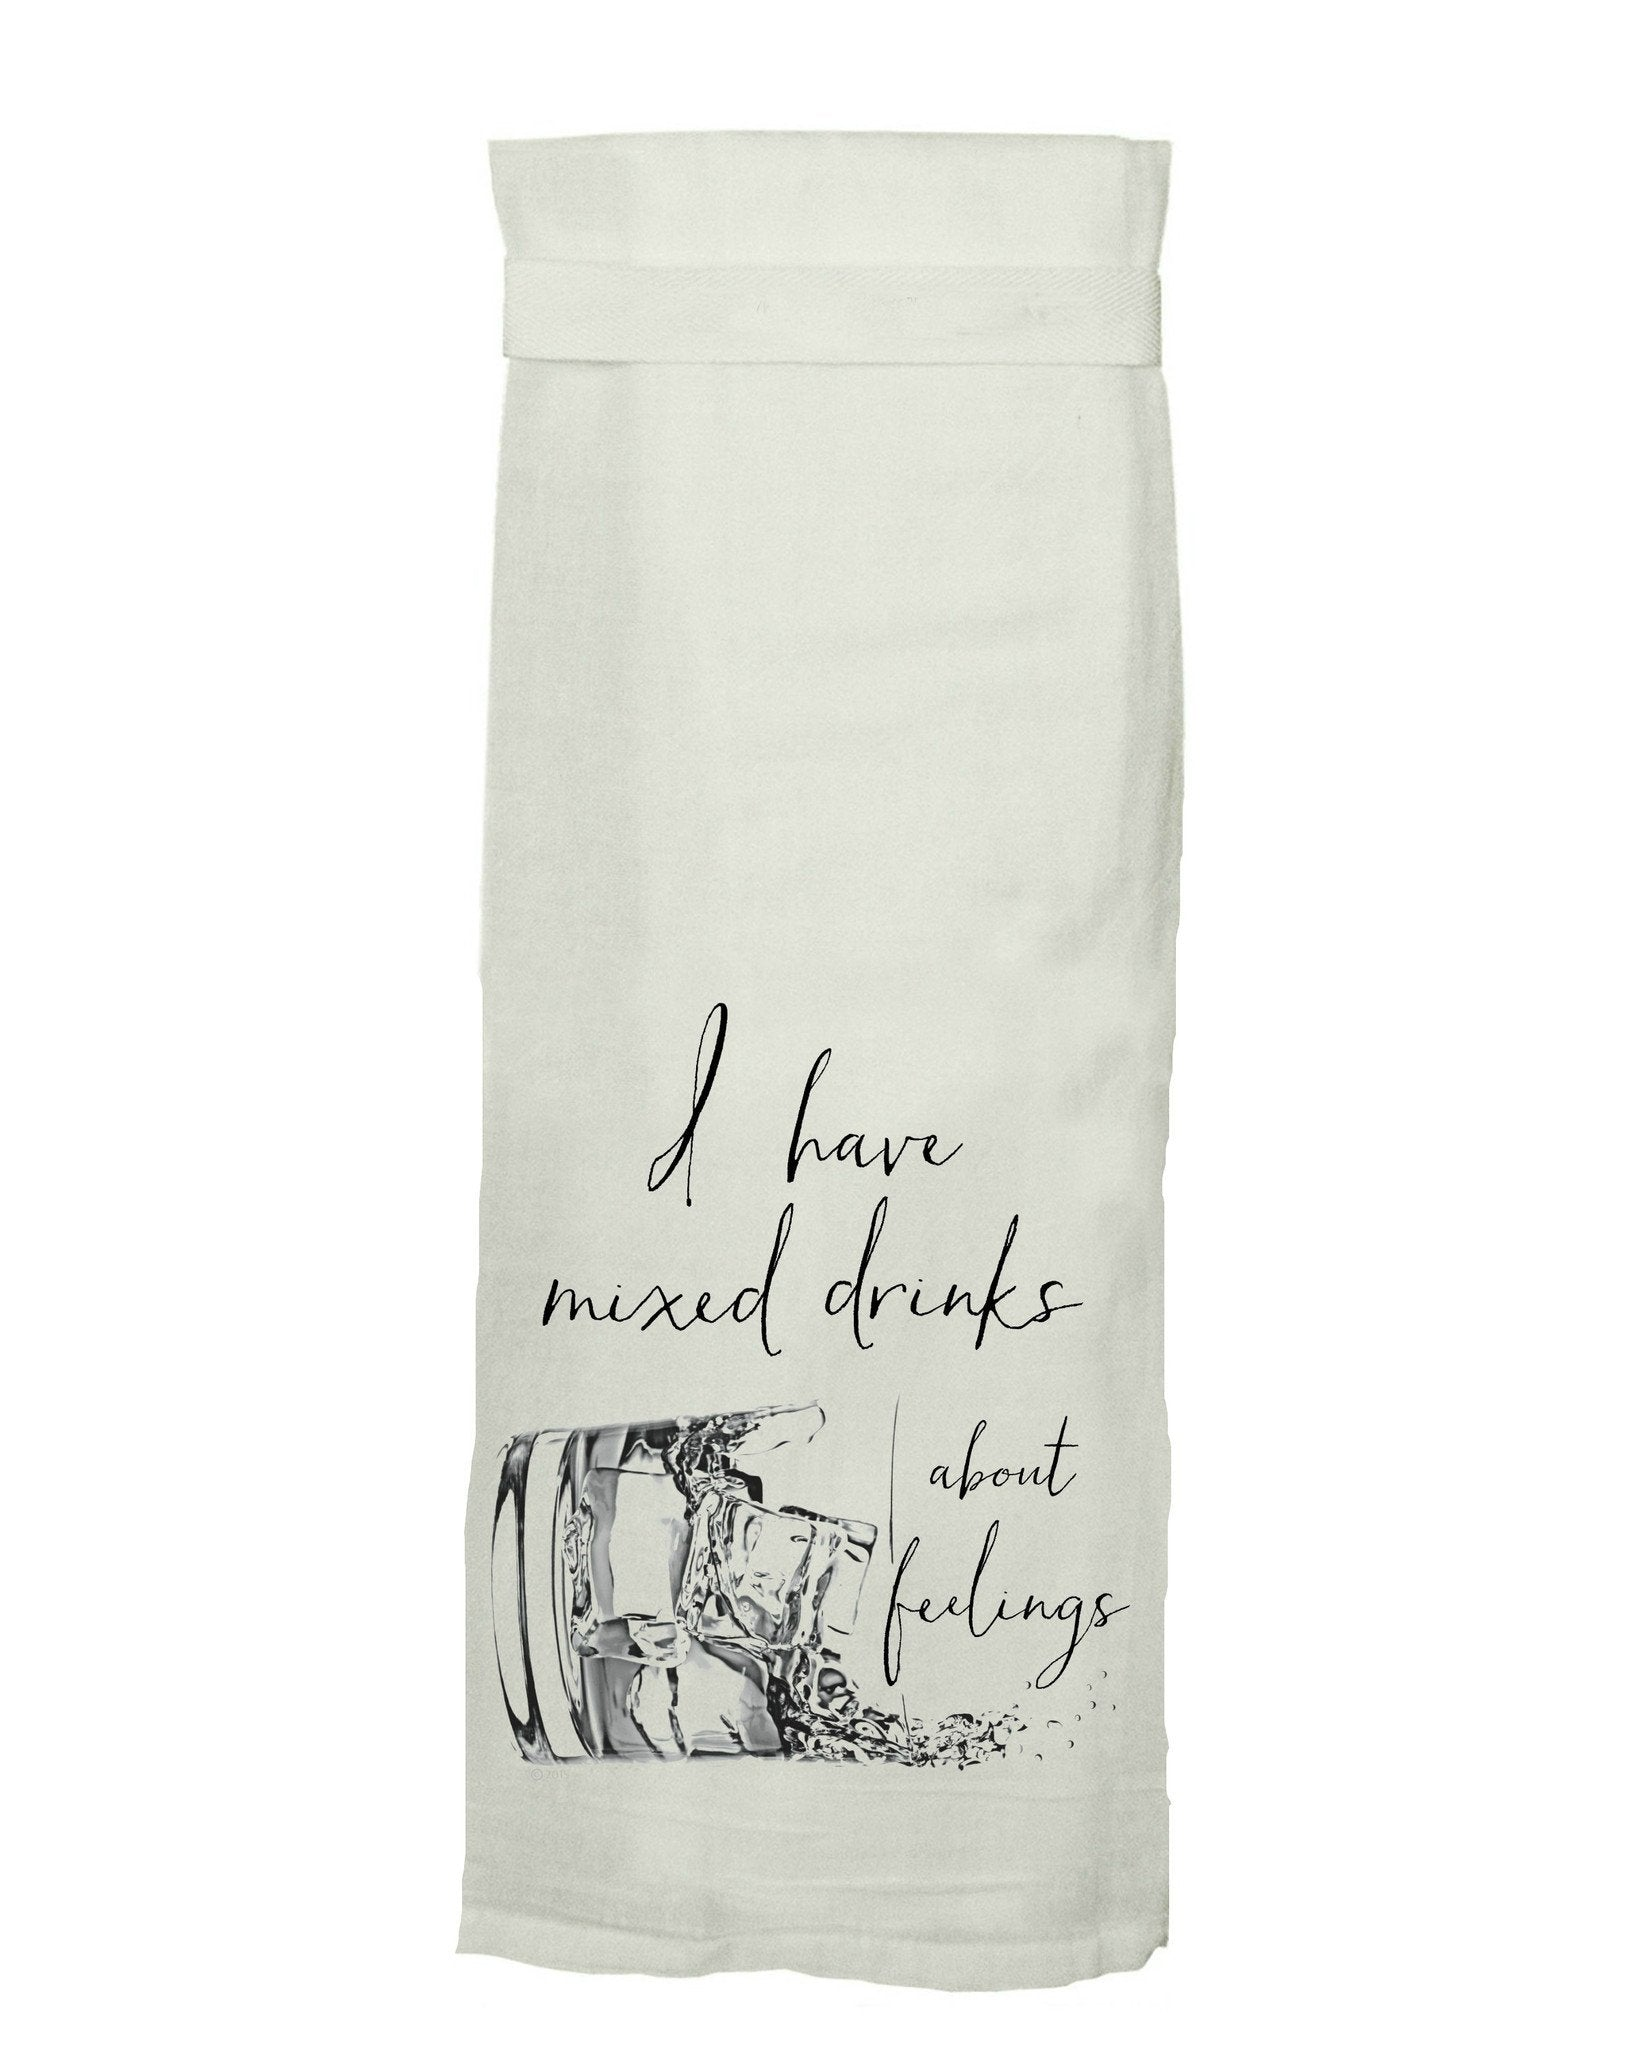 Buy I Have Mixed Drinks About Feelings Flour Sack Tea Towel from Walking Pants Curiosities, the Most un-General Gift Store in Downtown Memphis, Tennessee!